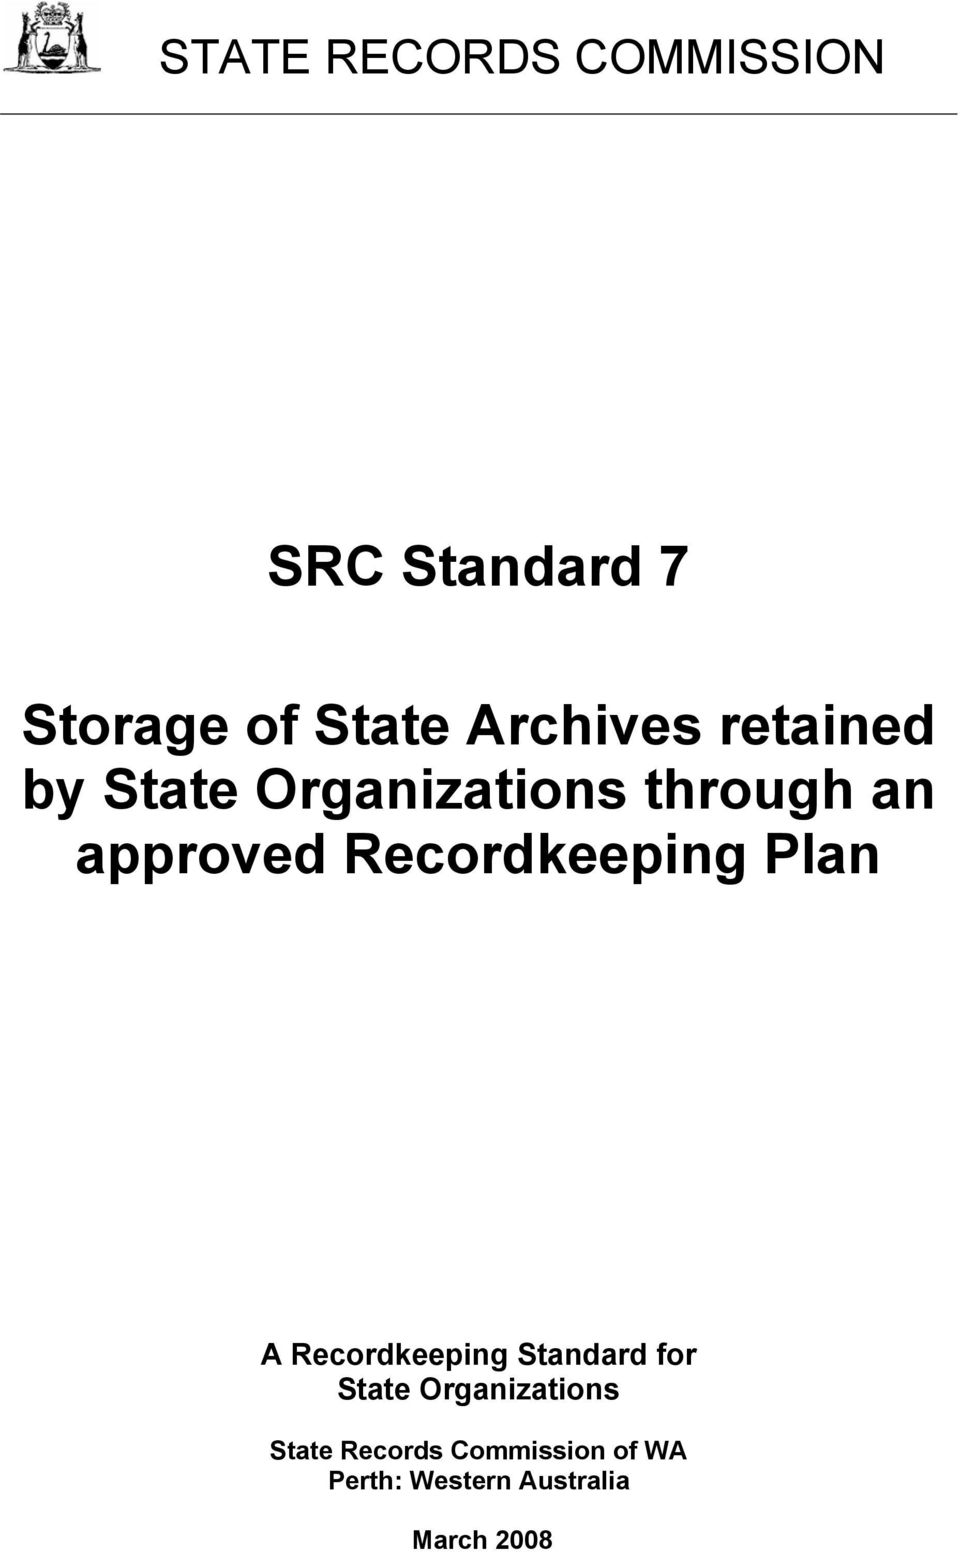 Recordkeeping Plan A Recordkeeping Standard for State